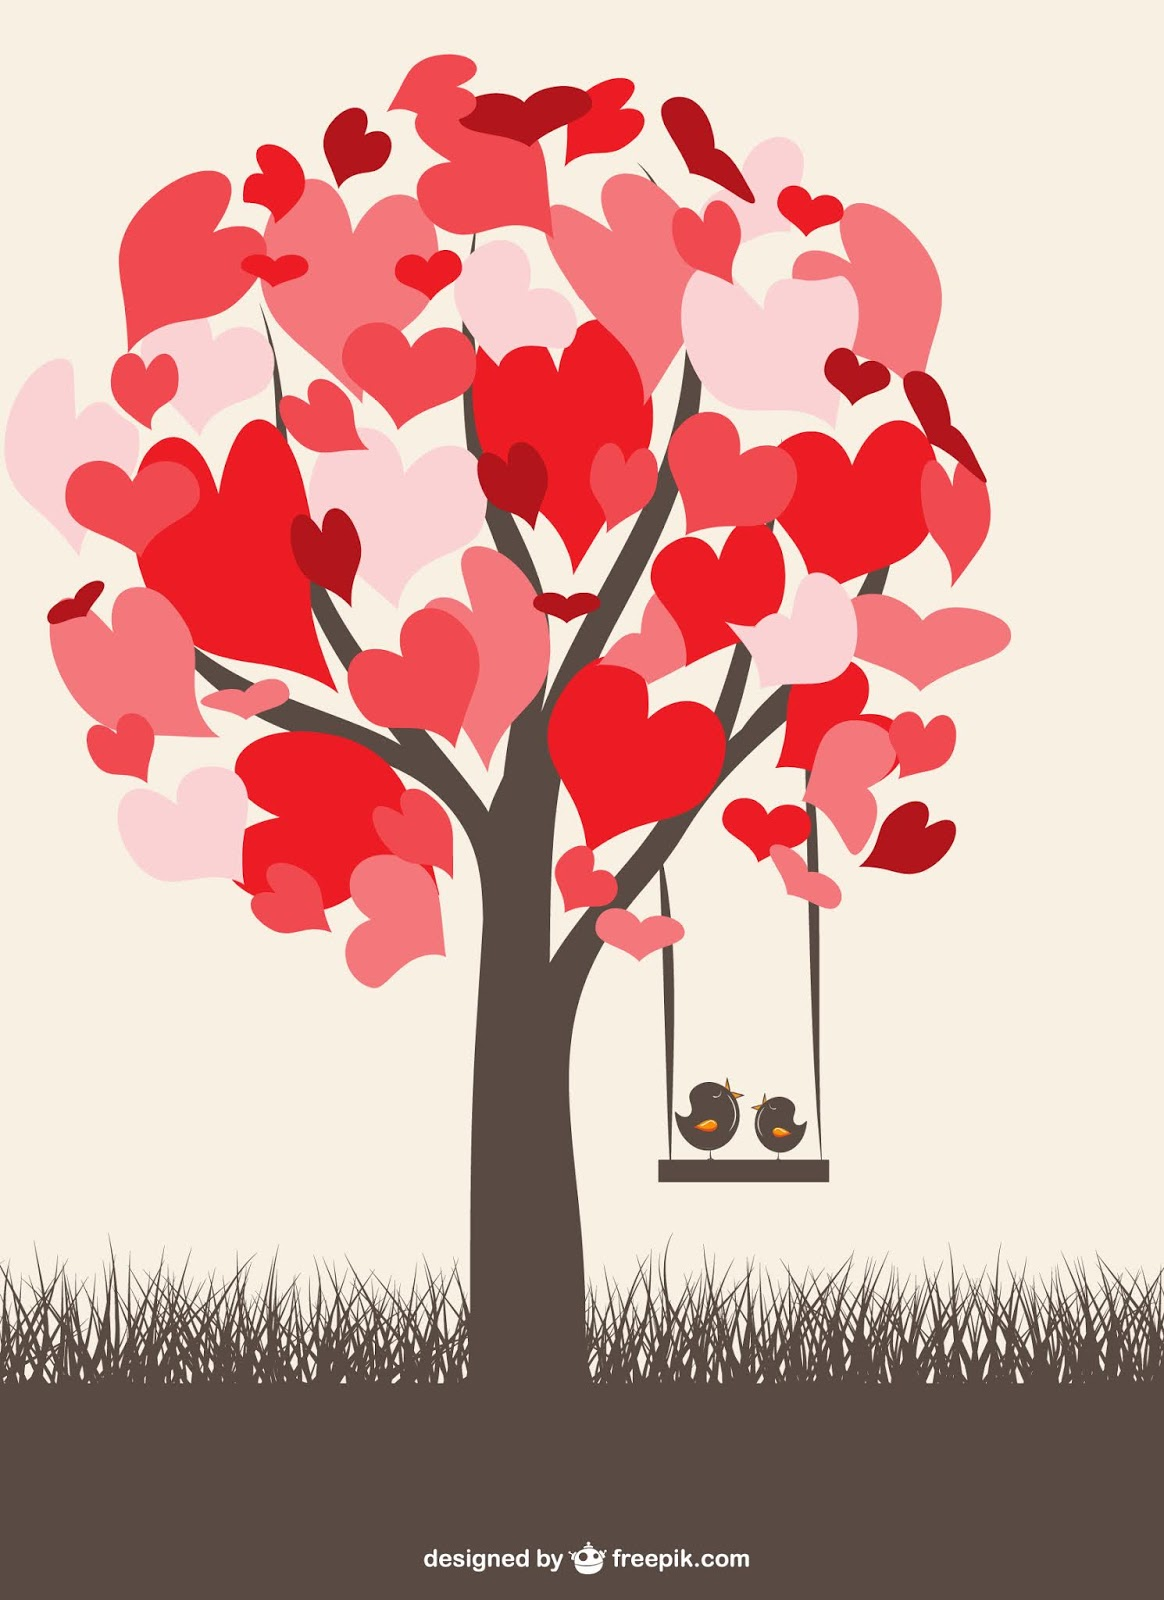 Love Birds Graphic Free Download Vector CDR, AI, EPS and PNG Formats